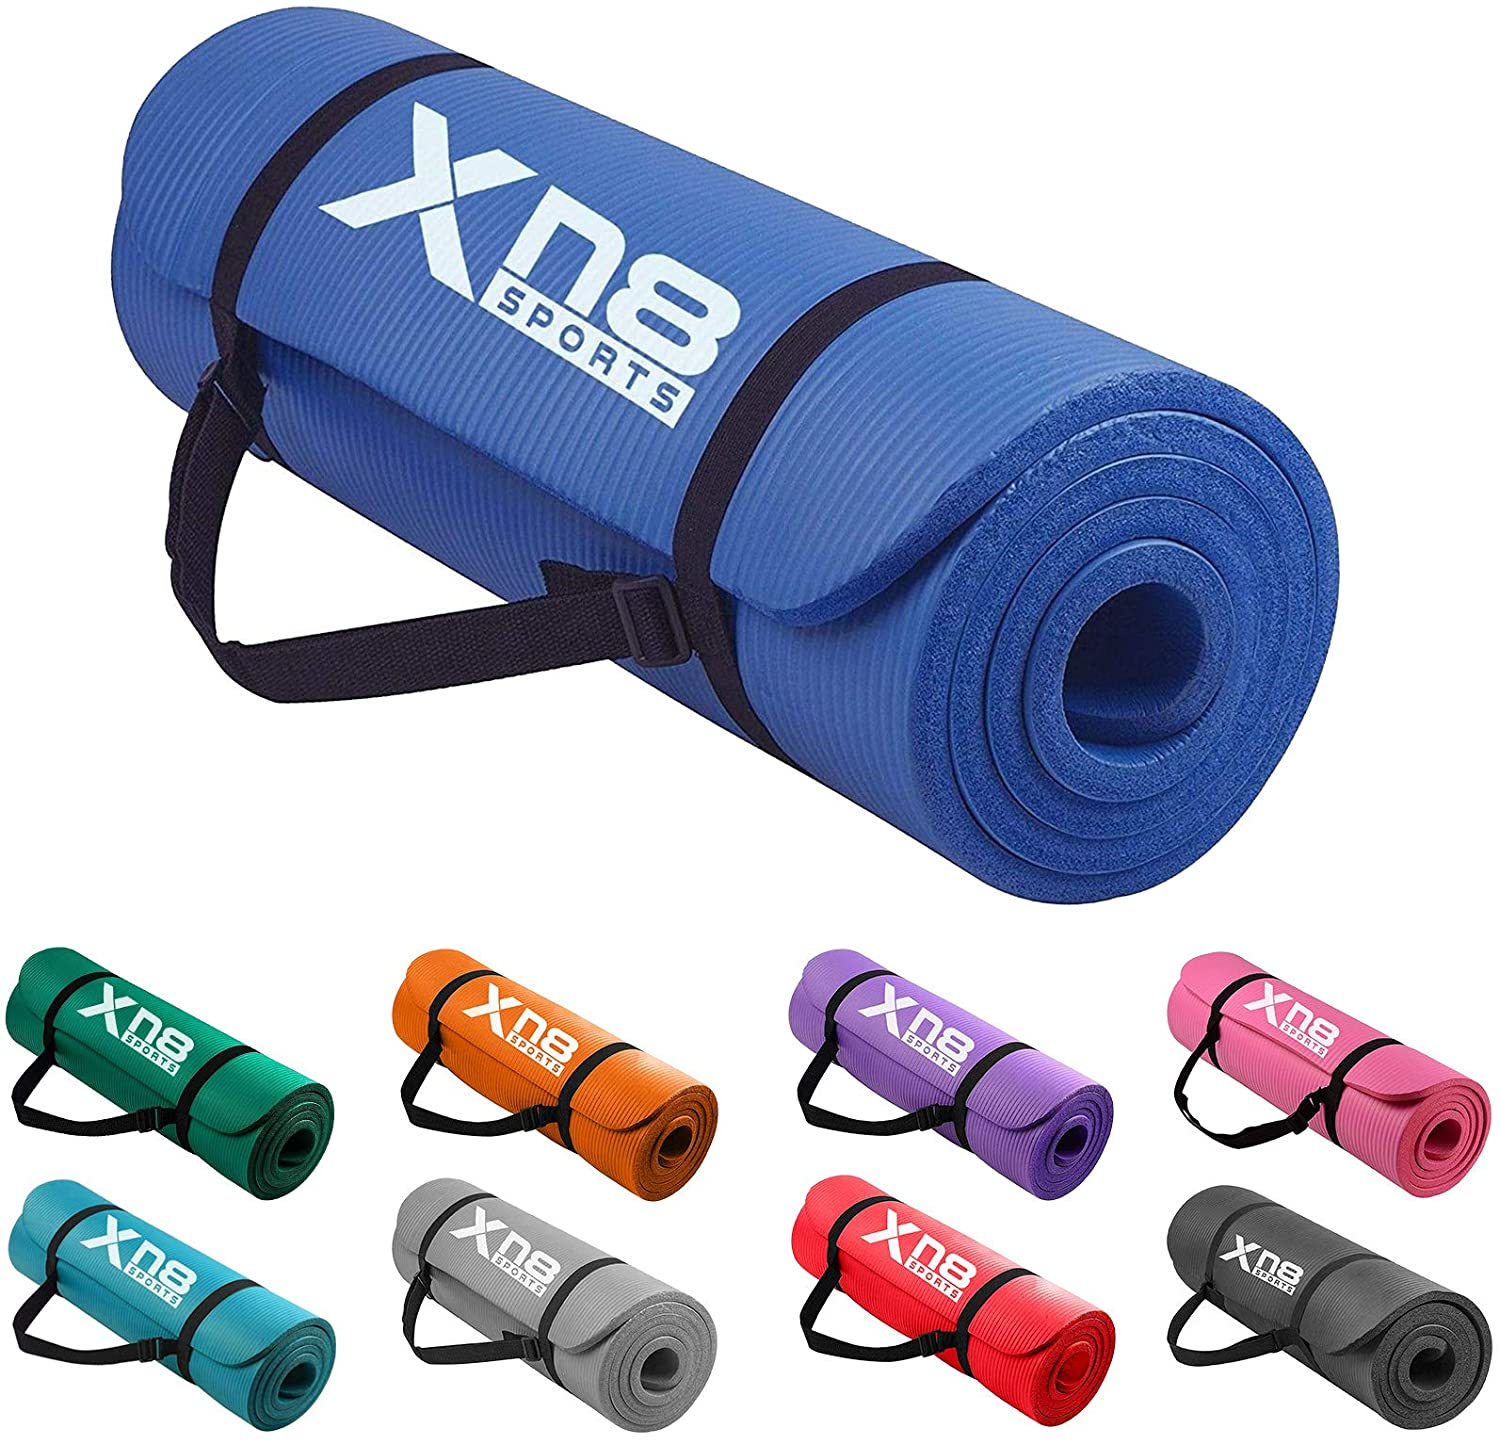 Non Slip Yoga Mat - WorkwearToronto.com - Best Christmas Gifts for Women 2020